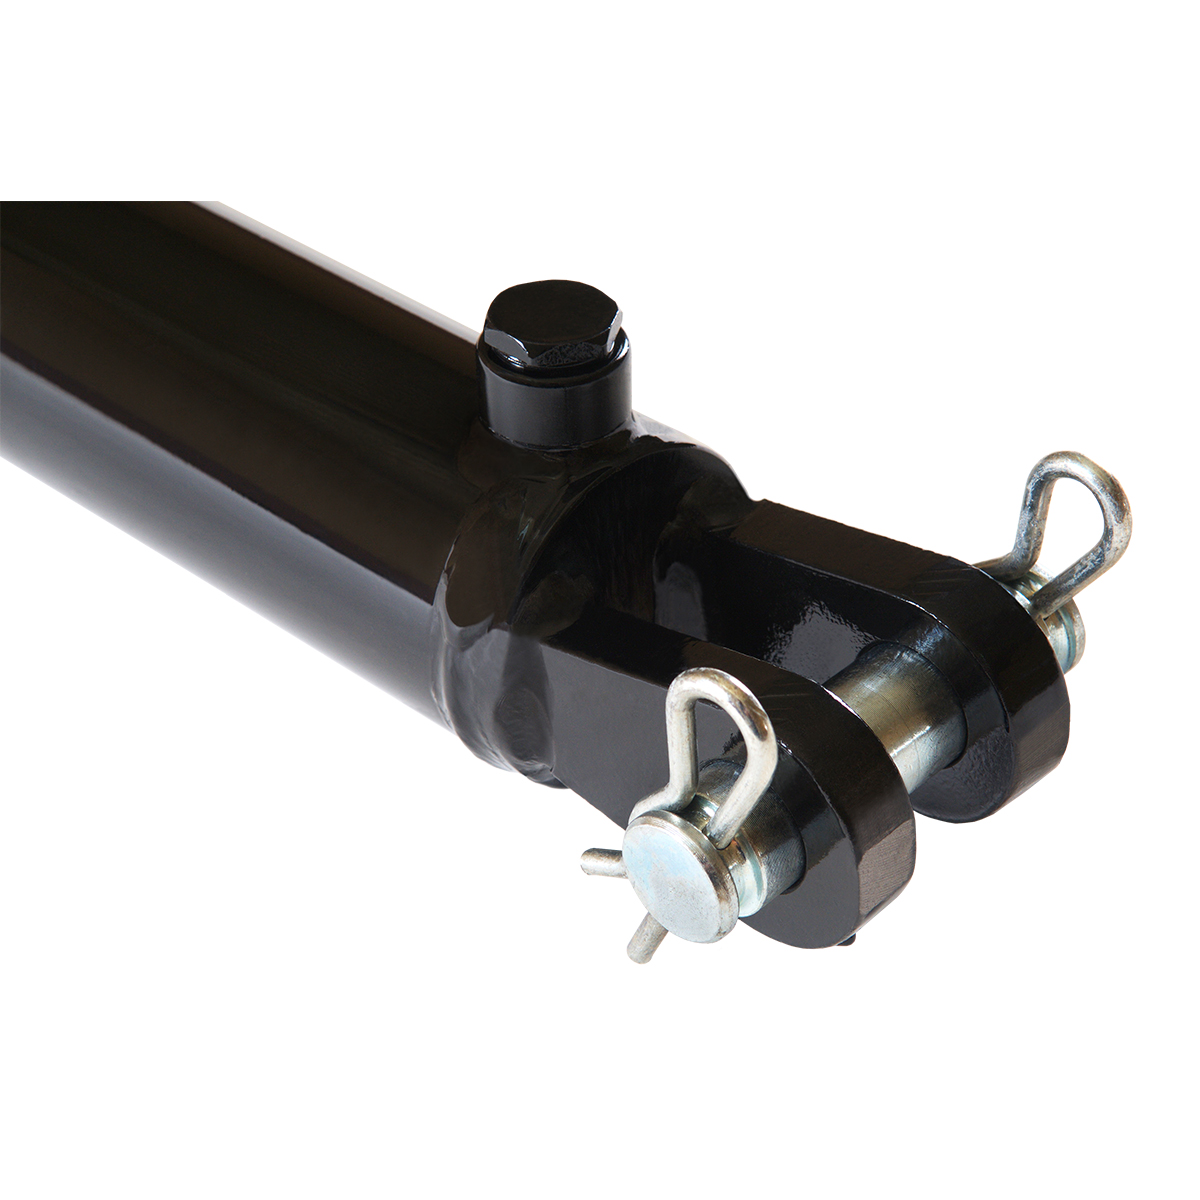 2.5 bore x 18 stroke hydraulic cylinder, welded clevis double acting cylinder | Magister Hydraulics